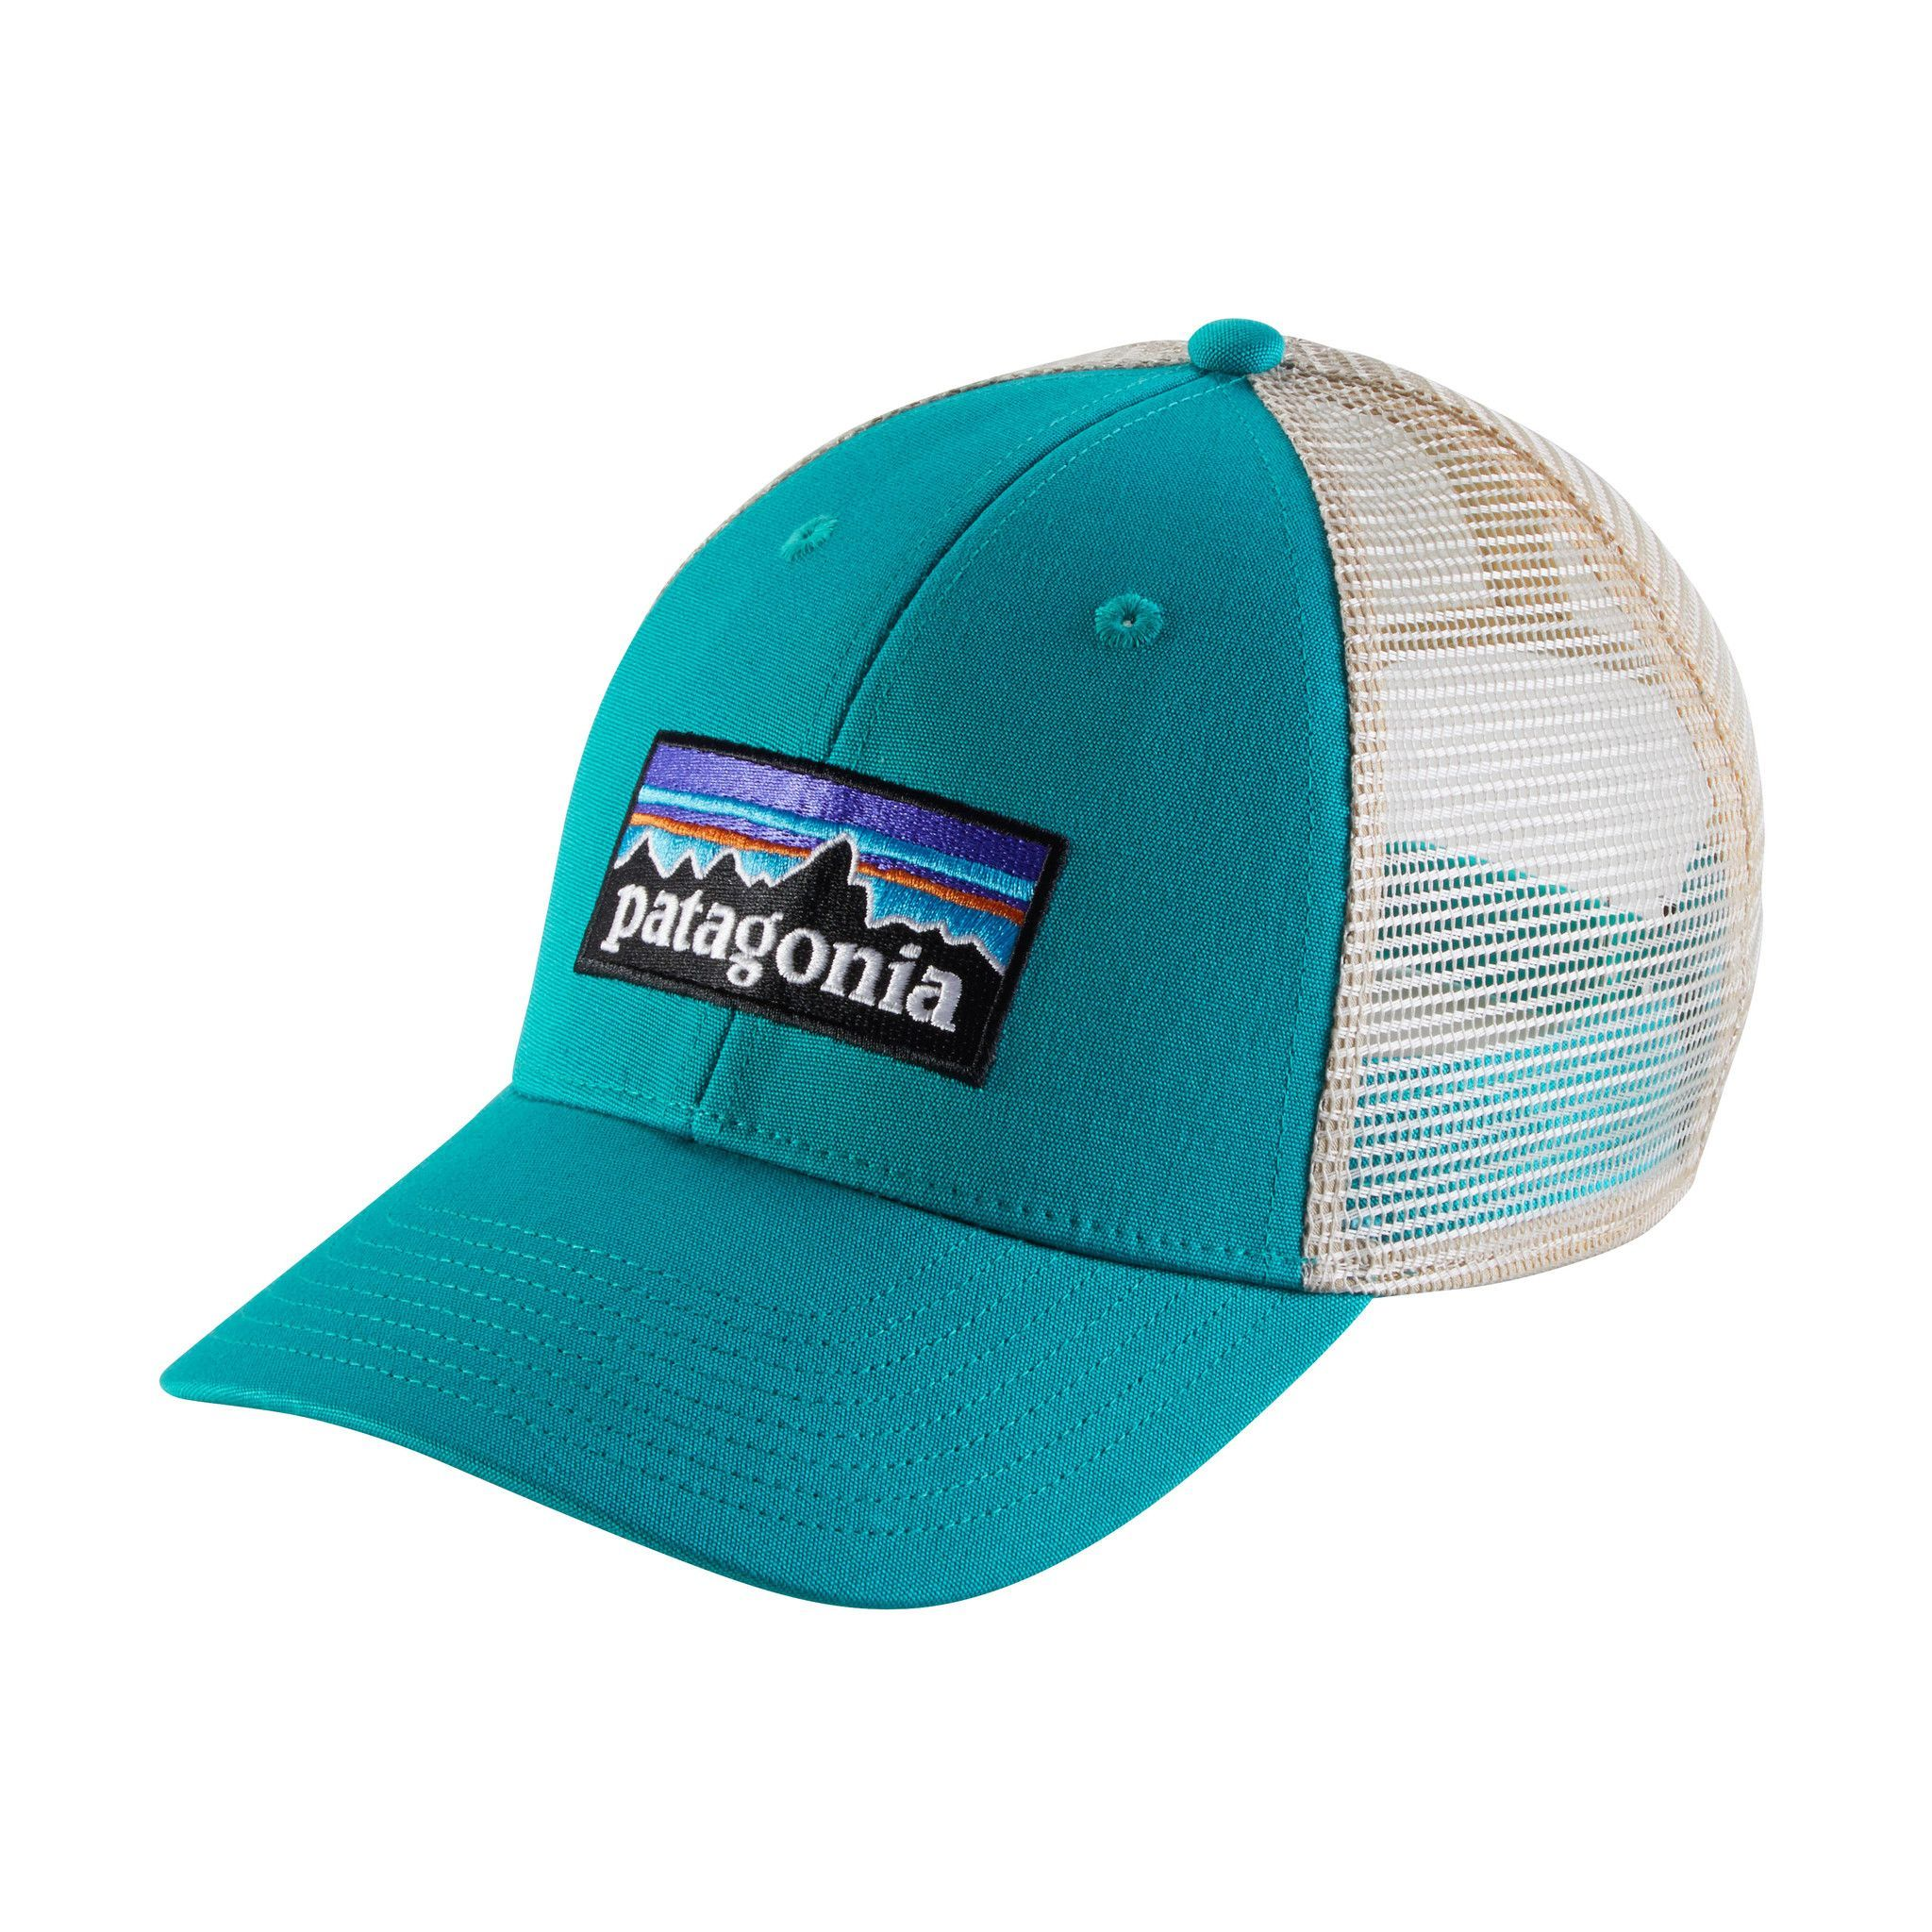 d4f3ae78c264af Patagonia p-6 logo lopro trucker hat | My Style | Hats, Patagonia ...